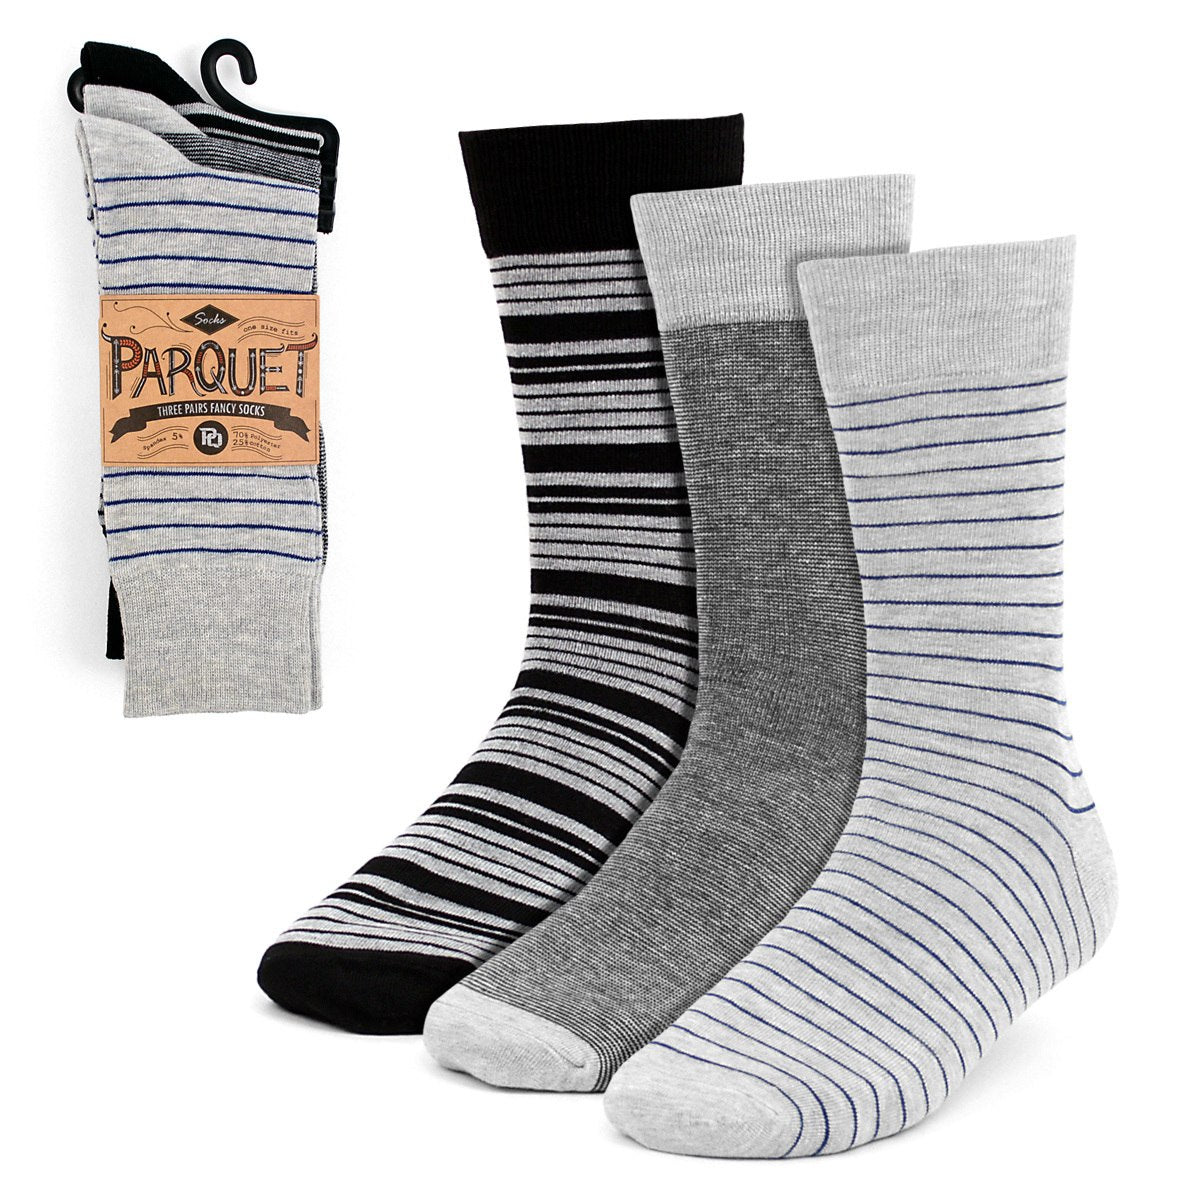 Dress Socks 3PKS-DRSY2 - Church Suits For Less